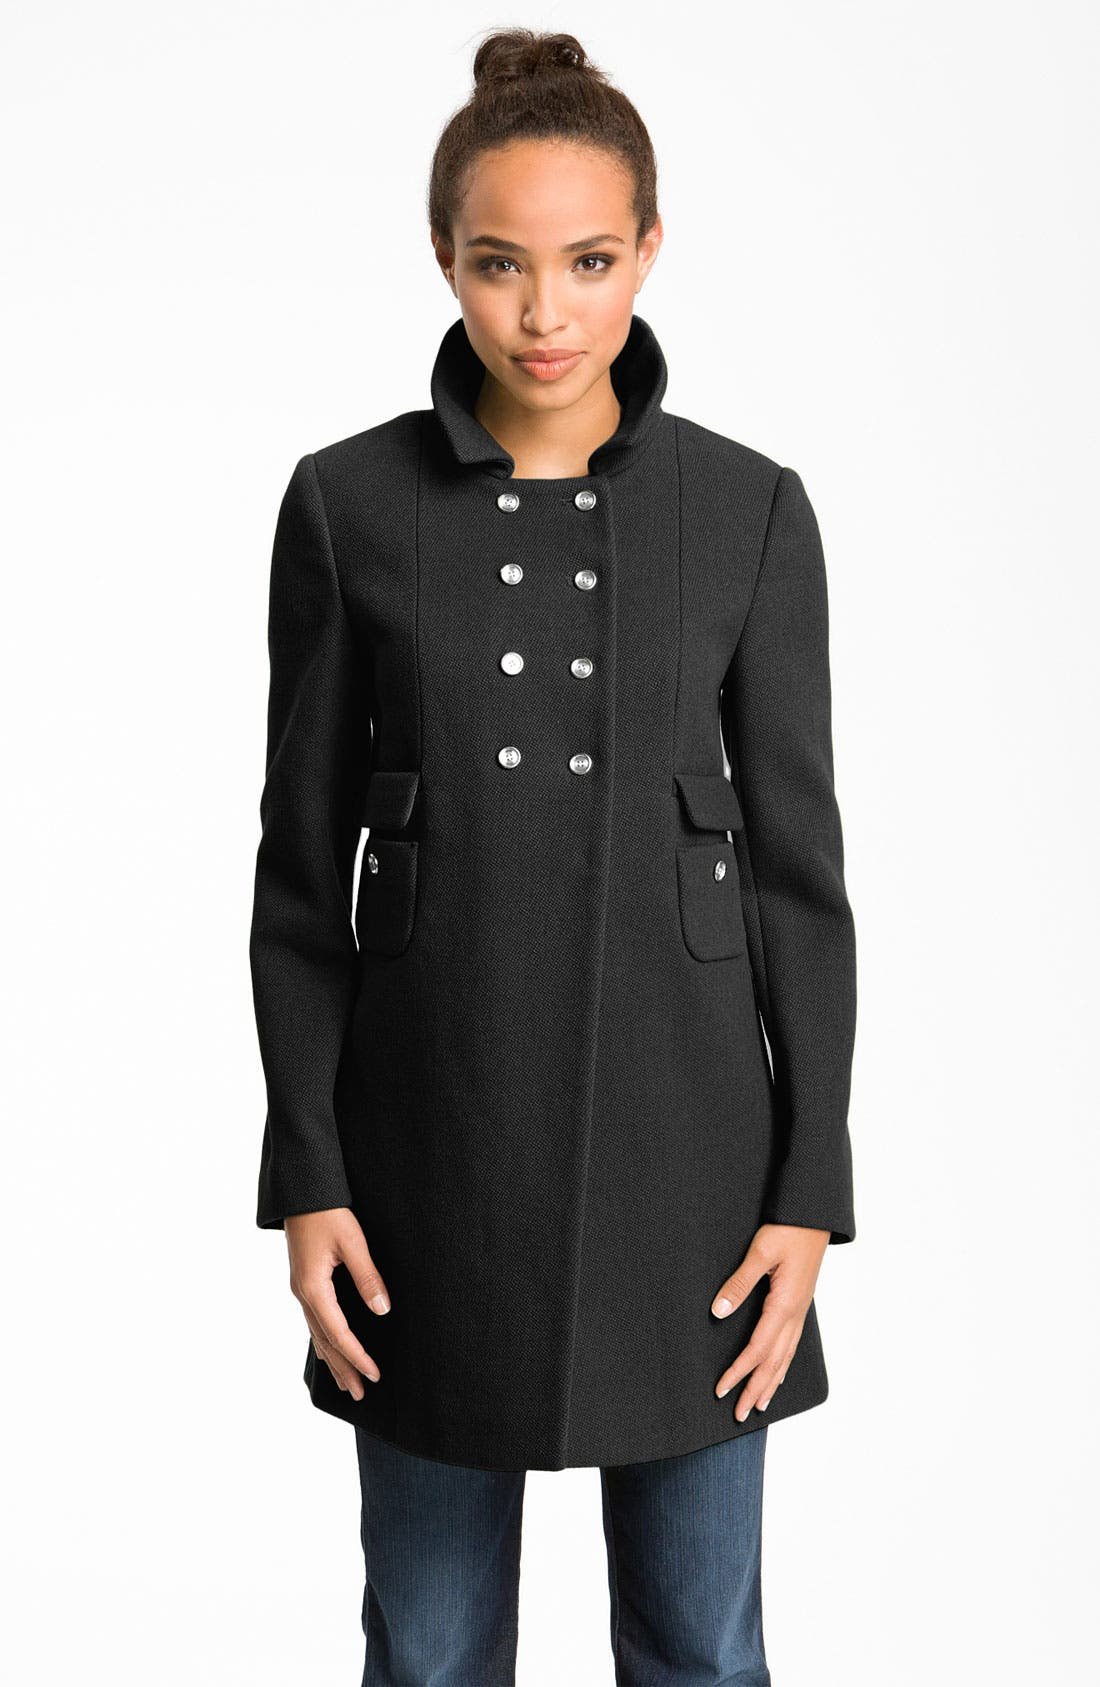 Main Image - Calvin Klein High Double Breasted Textured Peacoat